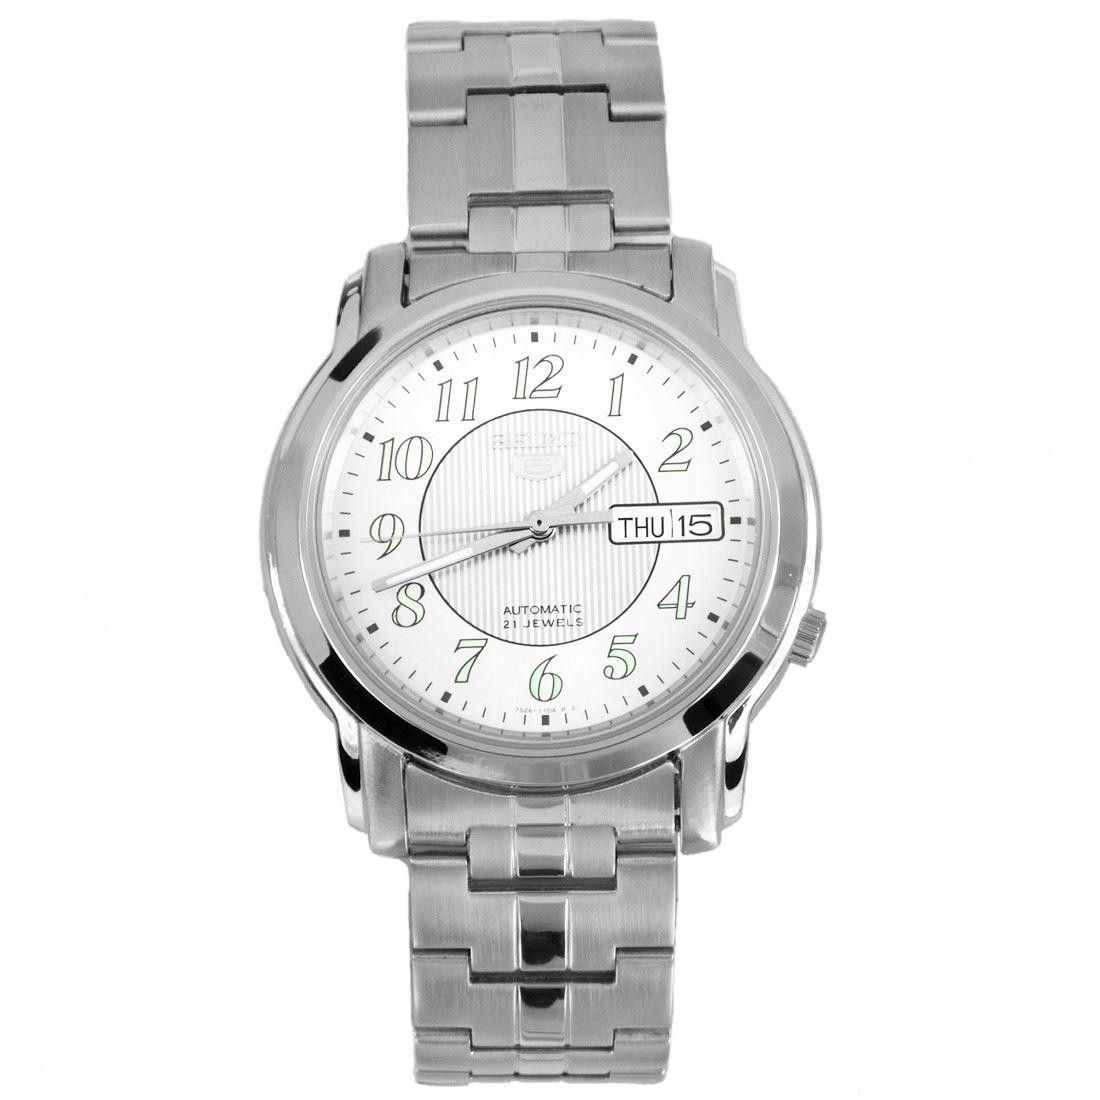 Seiko 5 Men Silver Stainless Steel Automatic Watch White Dial SNKL89K1